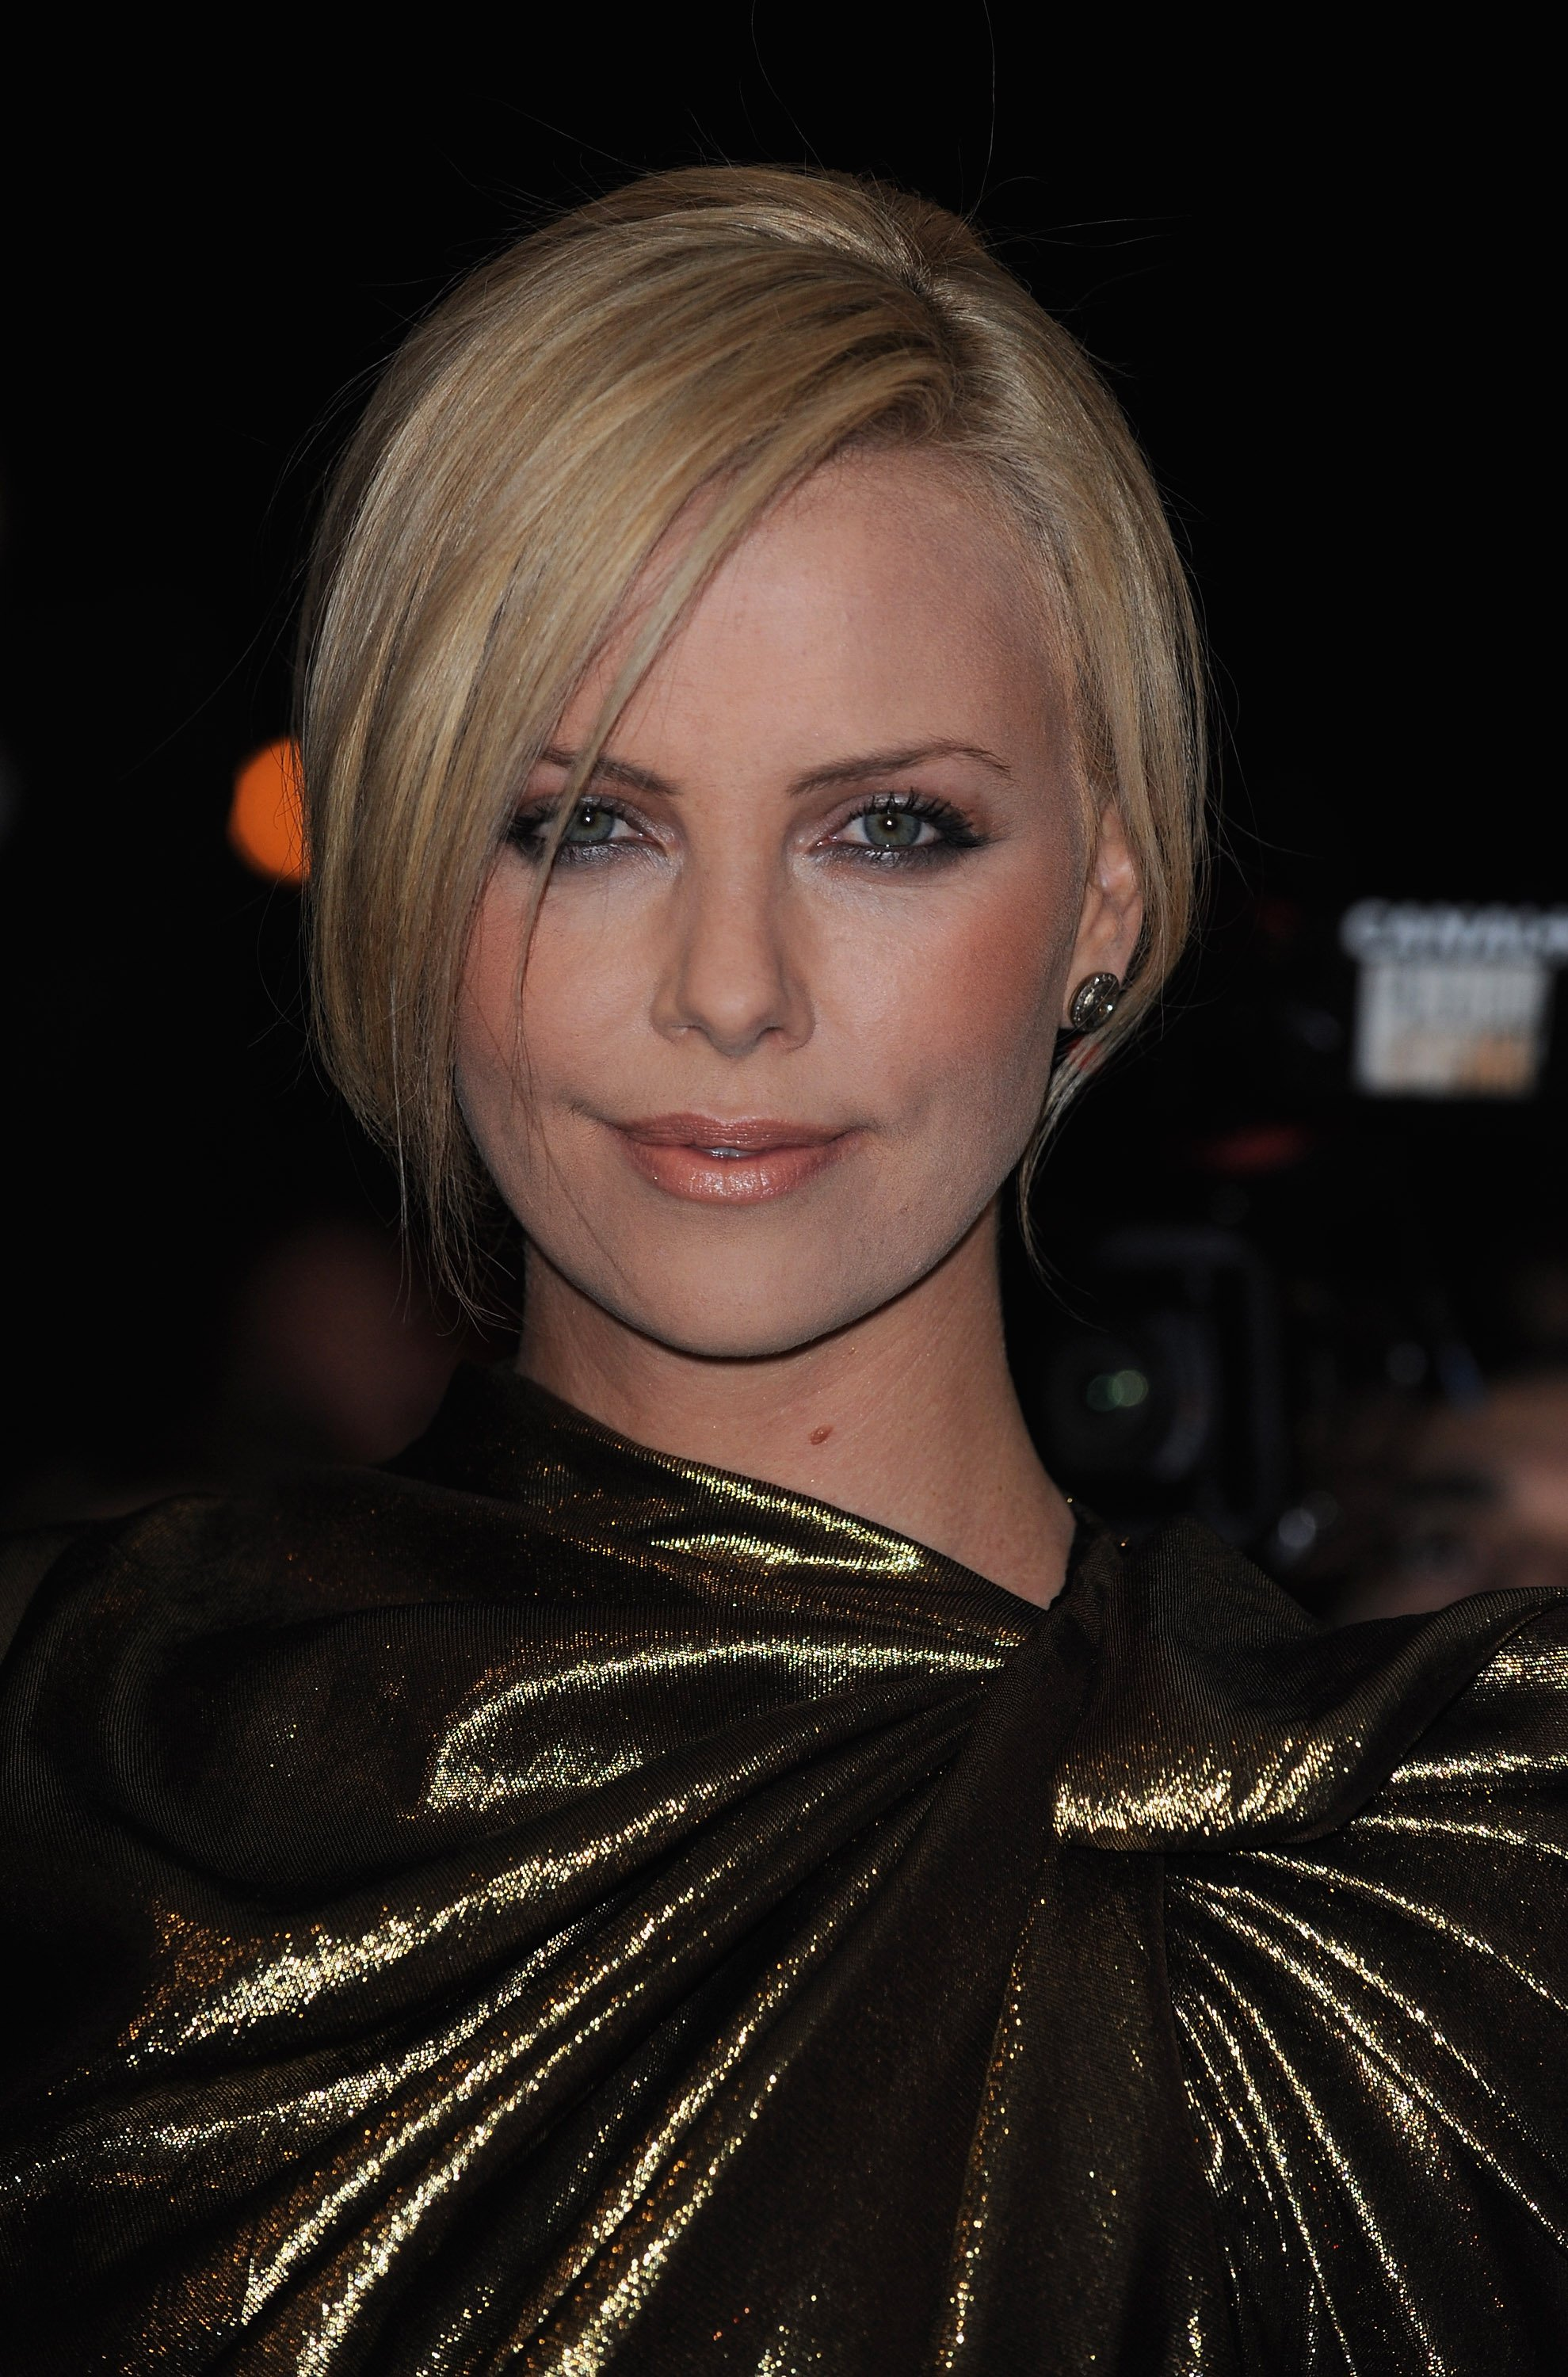 42965 Celebutopia Charlize Theron The Burning Plain premiere in Paris 13 122 214lo sample mpegs adult The Spartan Student: Lovin' and bummin' on the open road: ...